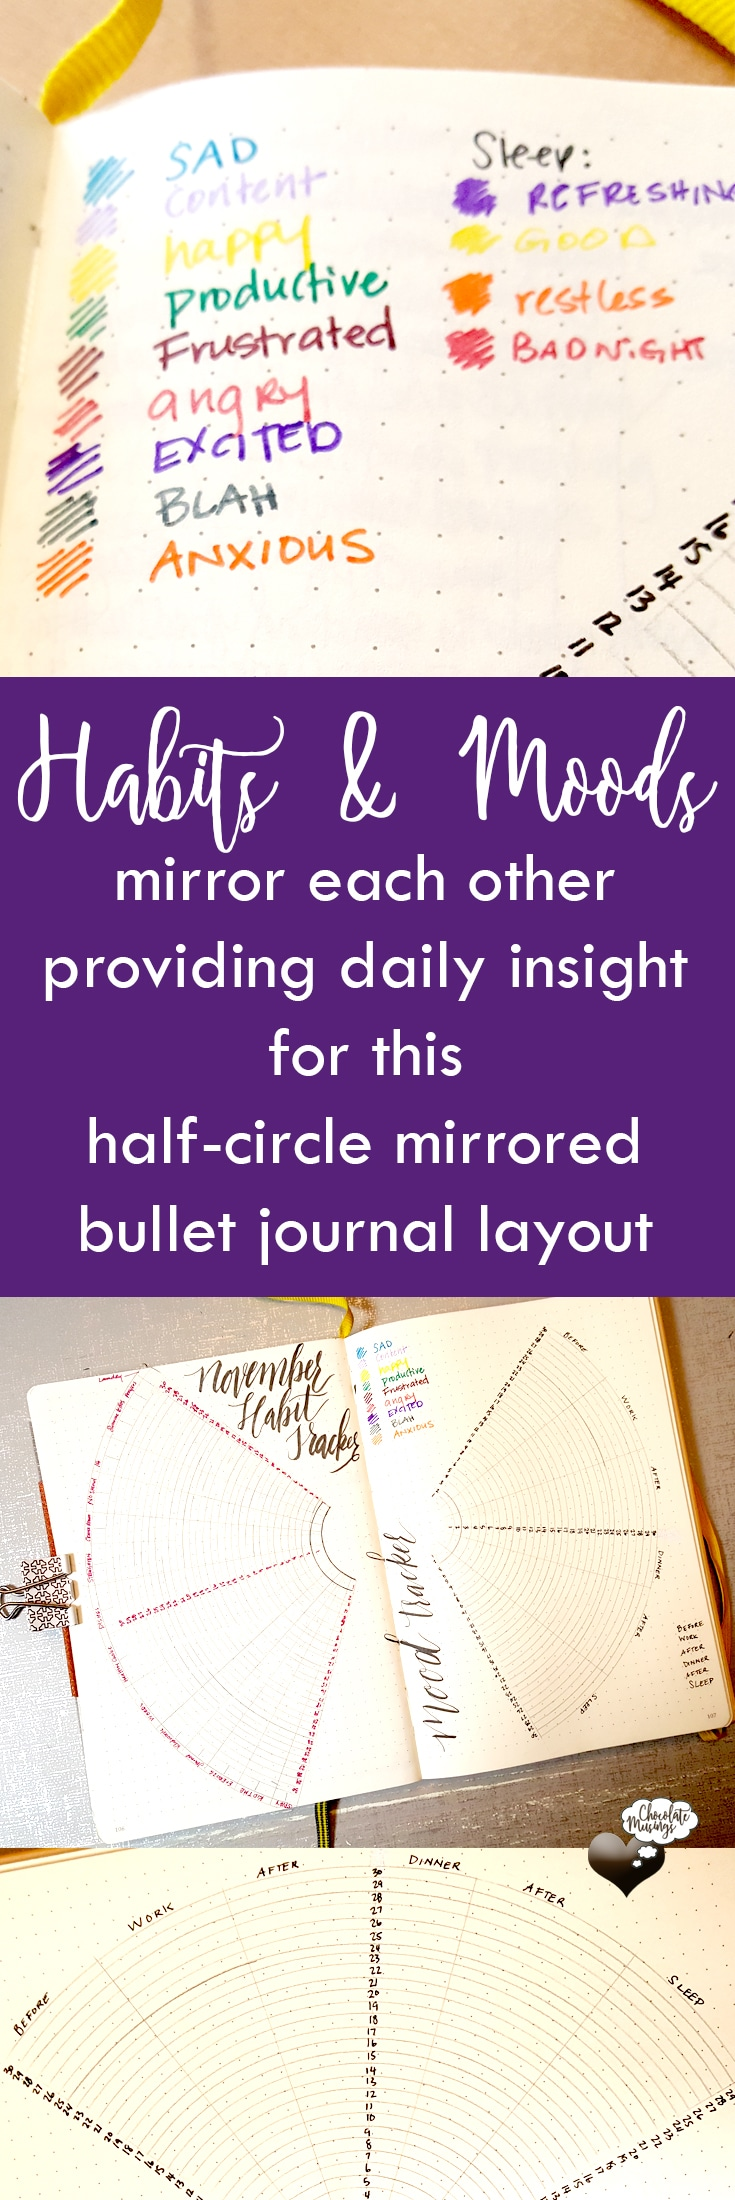 Habits and Moods mirror each other & provide daily insight, half-circled mirrored bullet journal layout, Habit and Mood Tracker